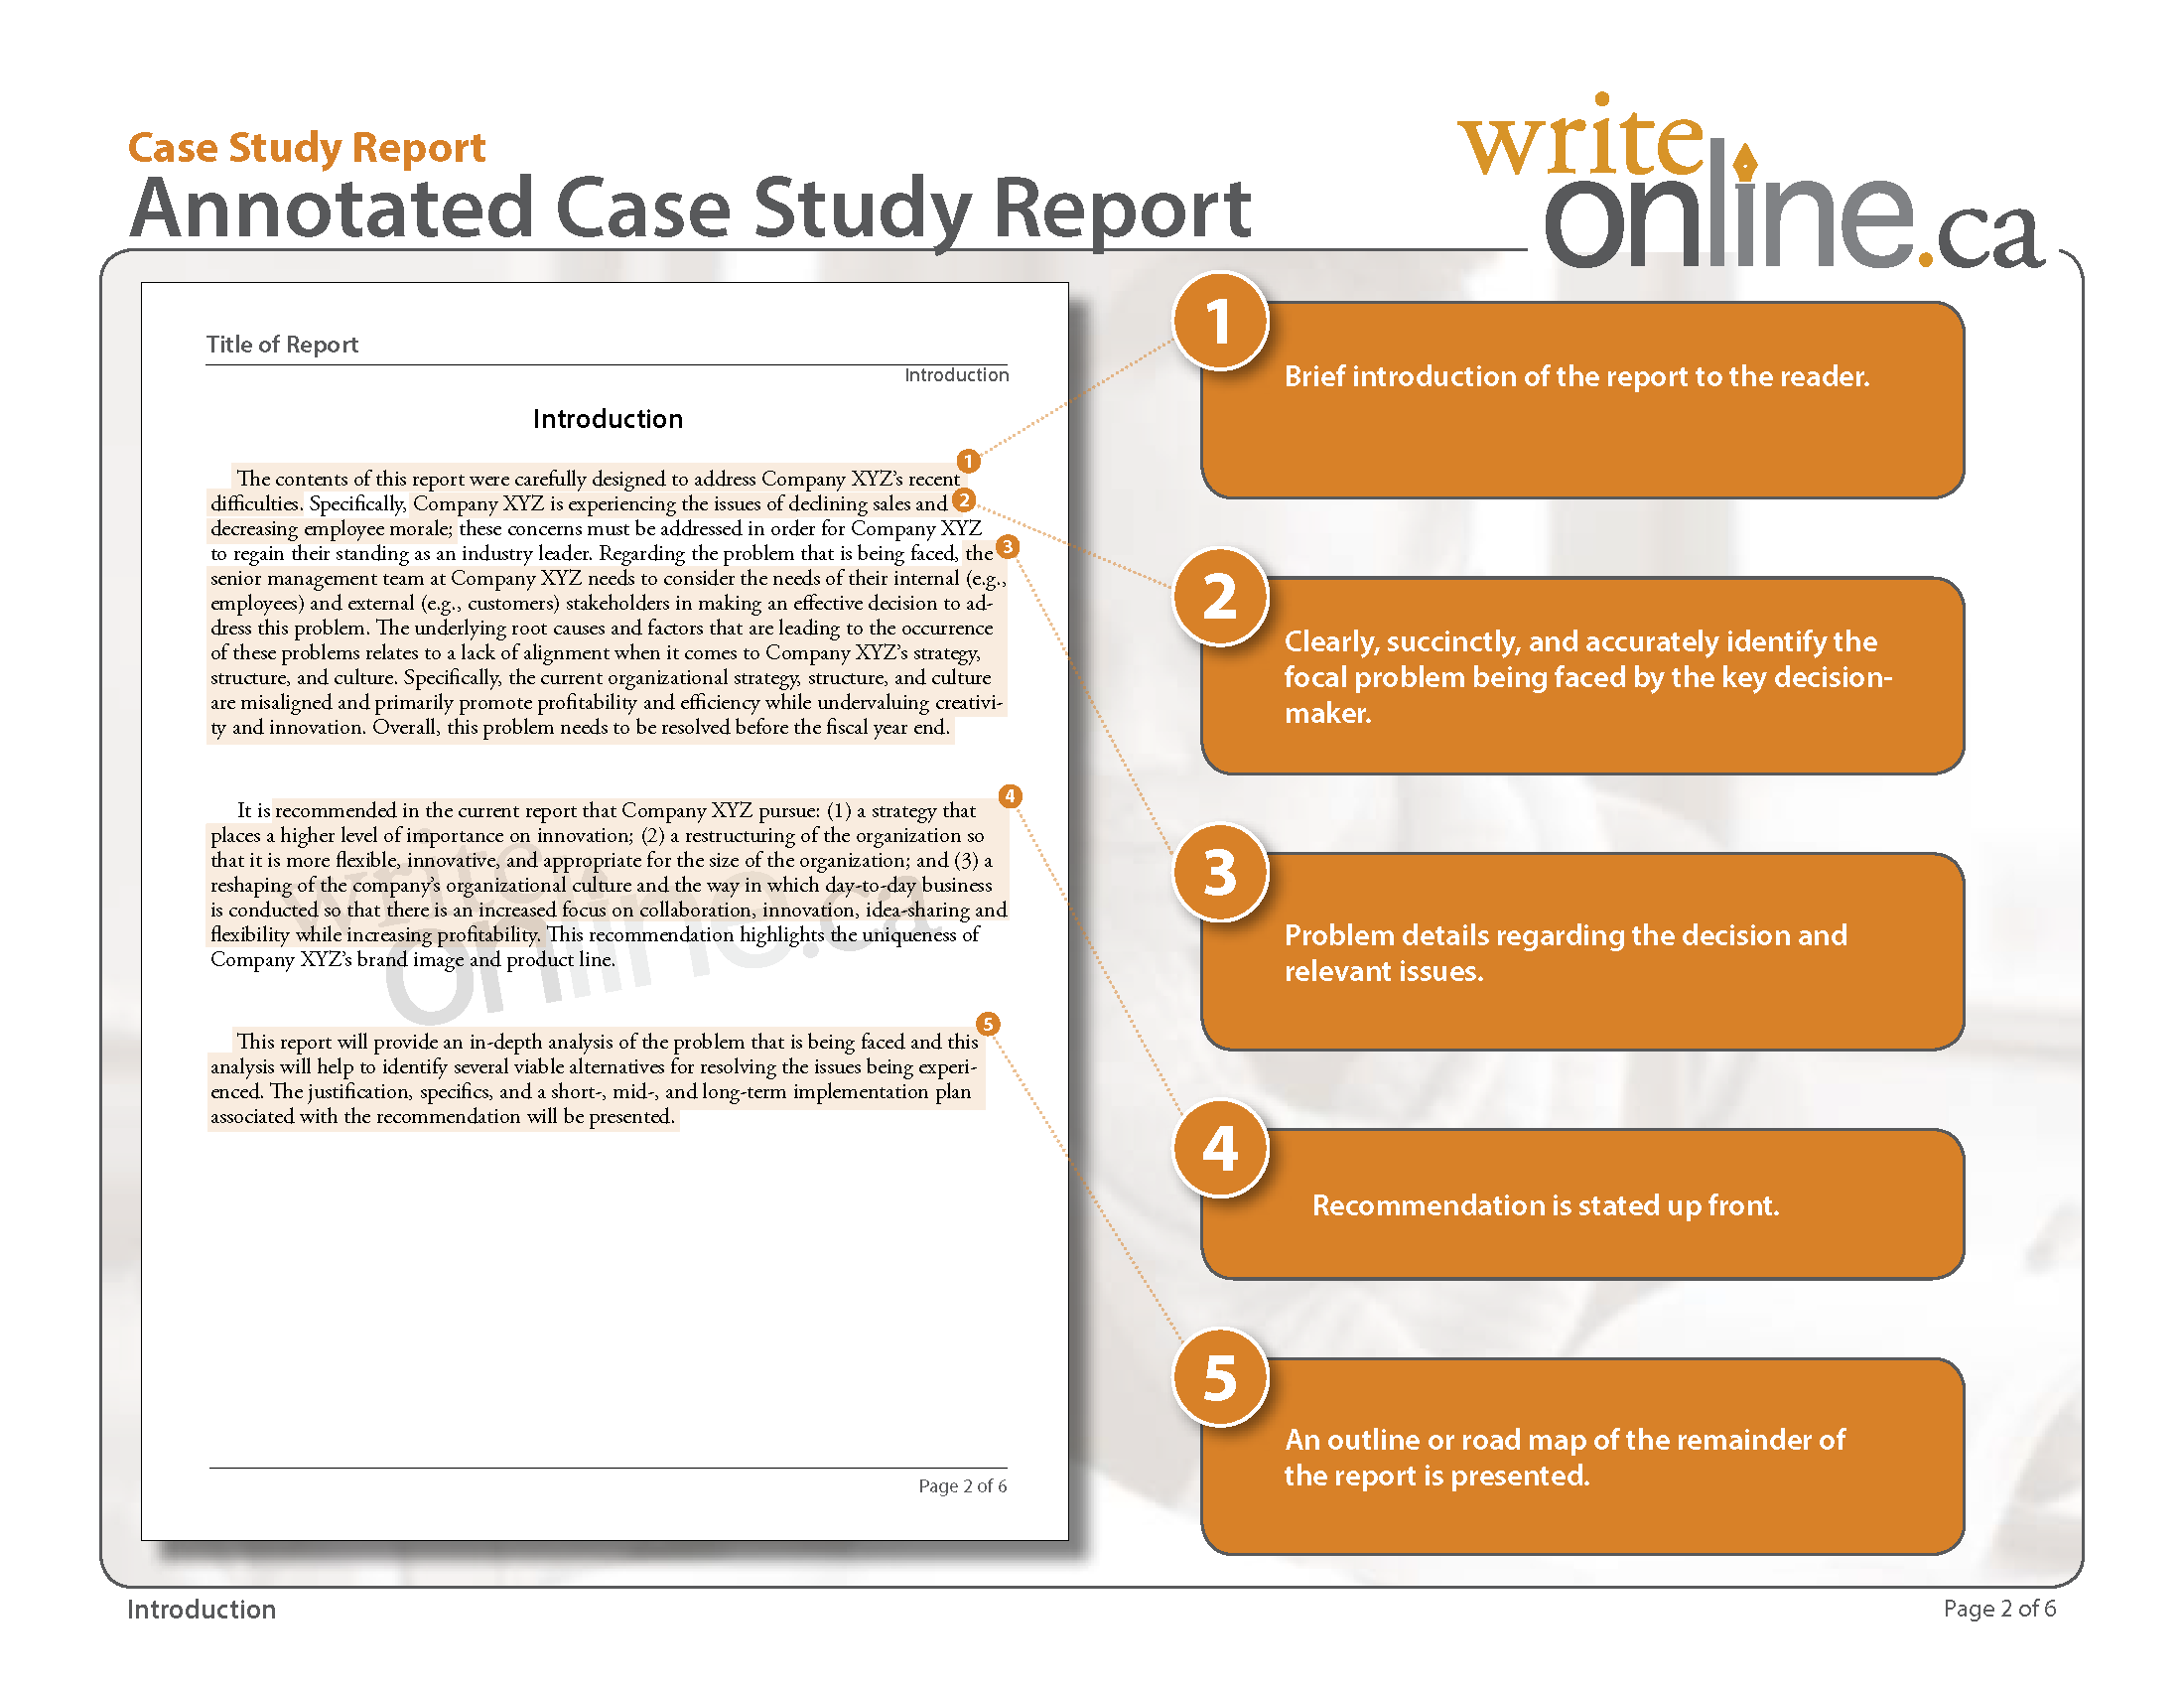 023 Research Paper Components Of Apa Casestudy Annotatedfull Page 2 Fascinating A In Format Full